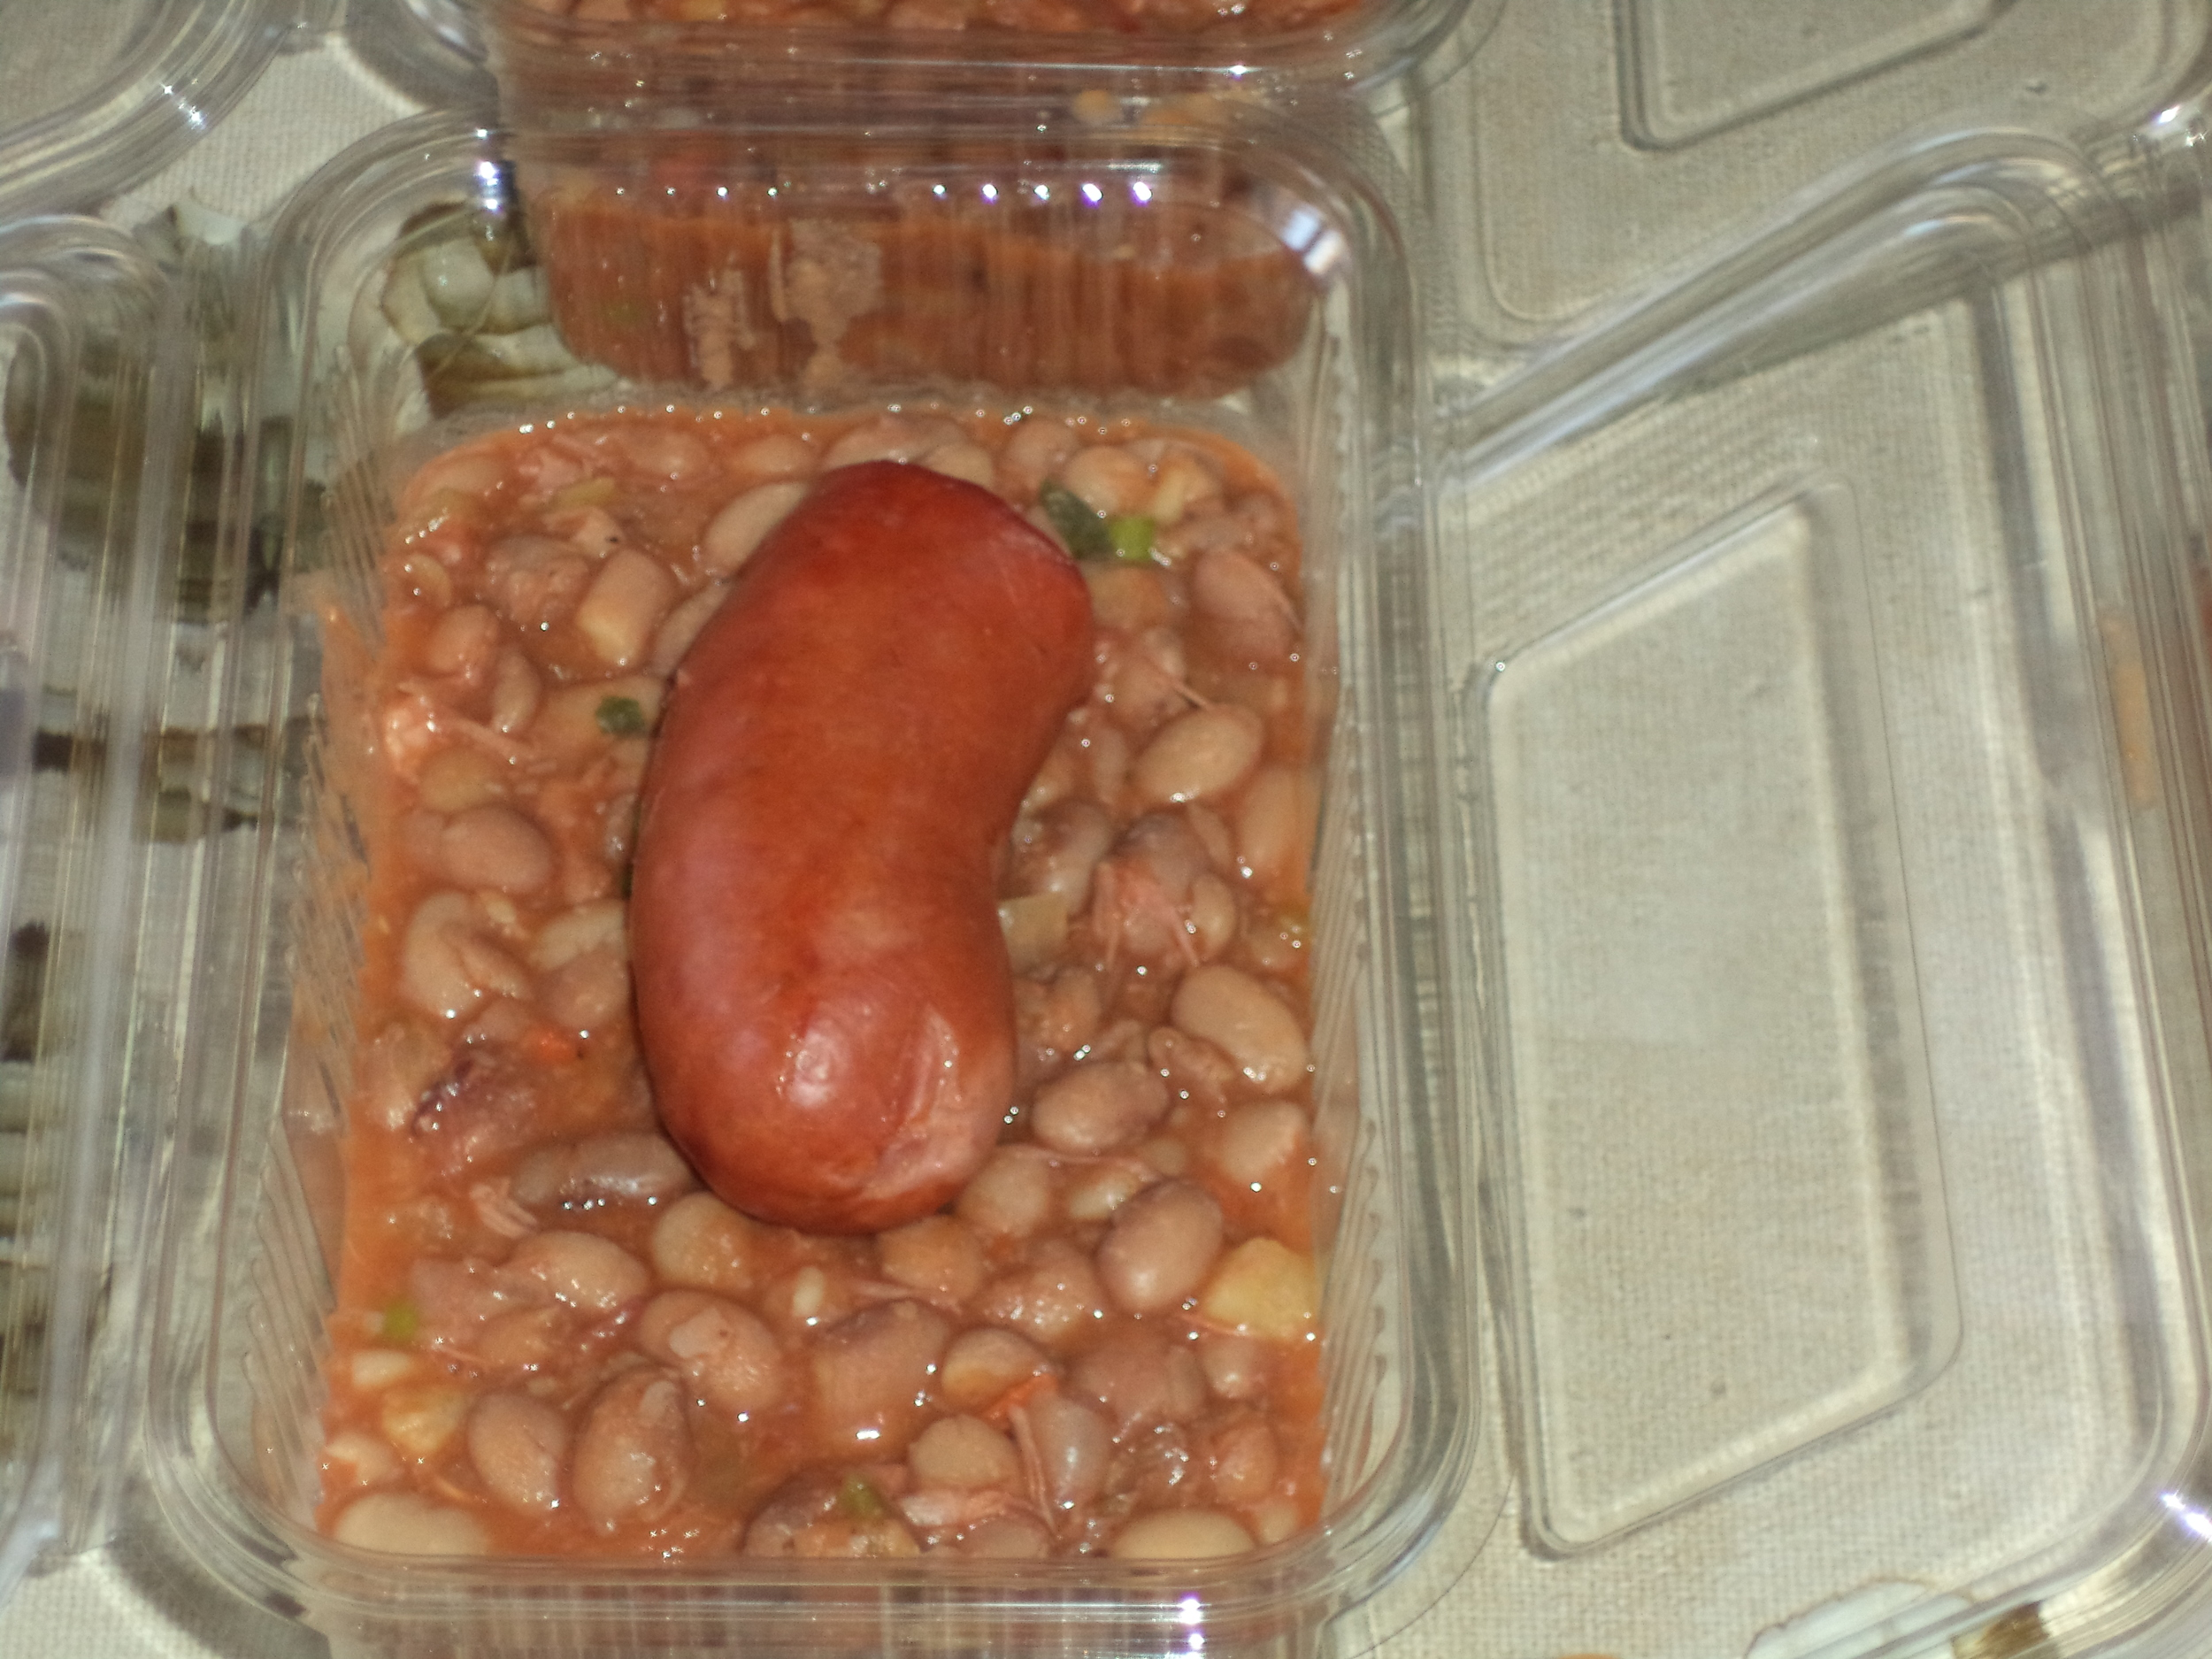 Sausage and homemade beans served with bread and fruit.